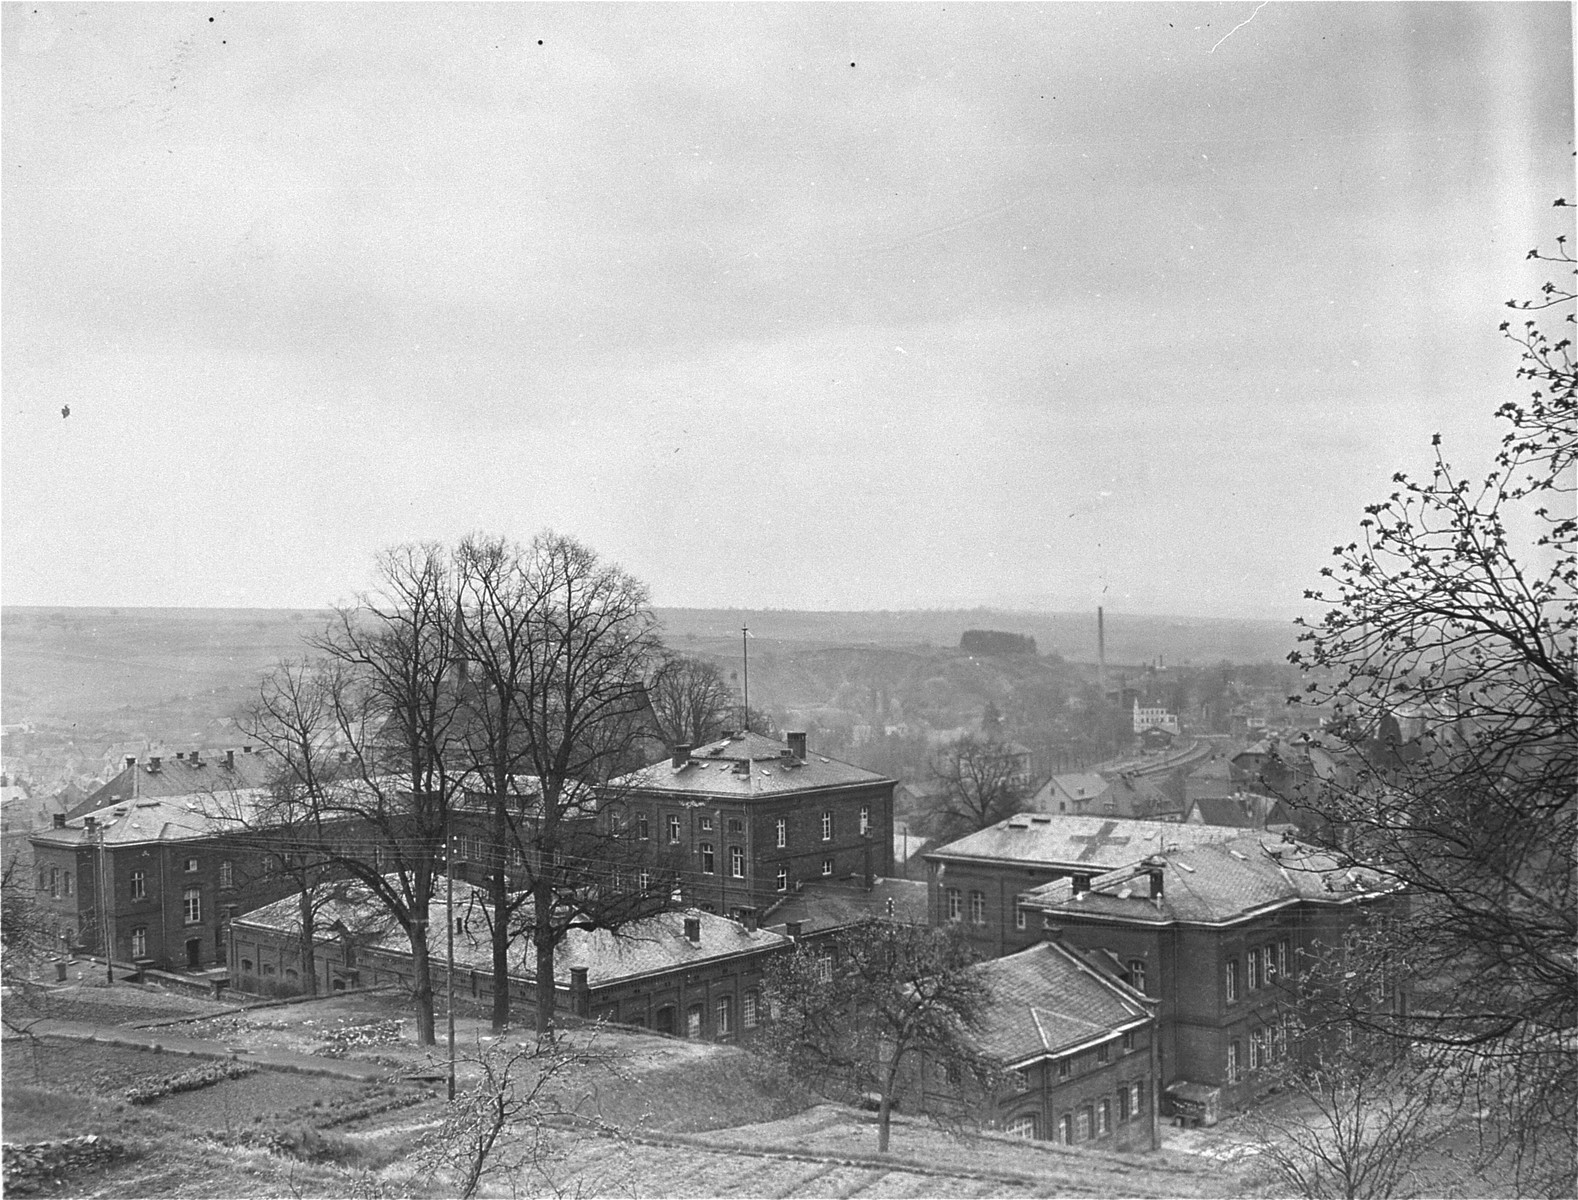 View of the Hadamar Institute,   The photograph was taken by an American military photographer soon after the liberation.